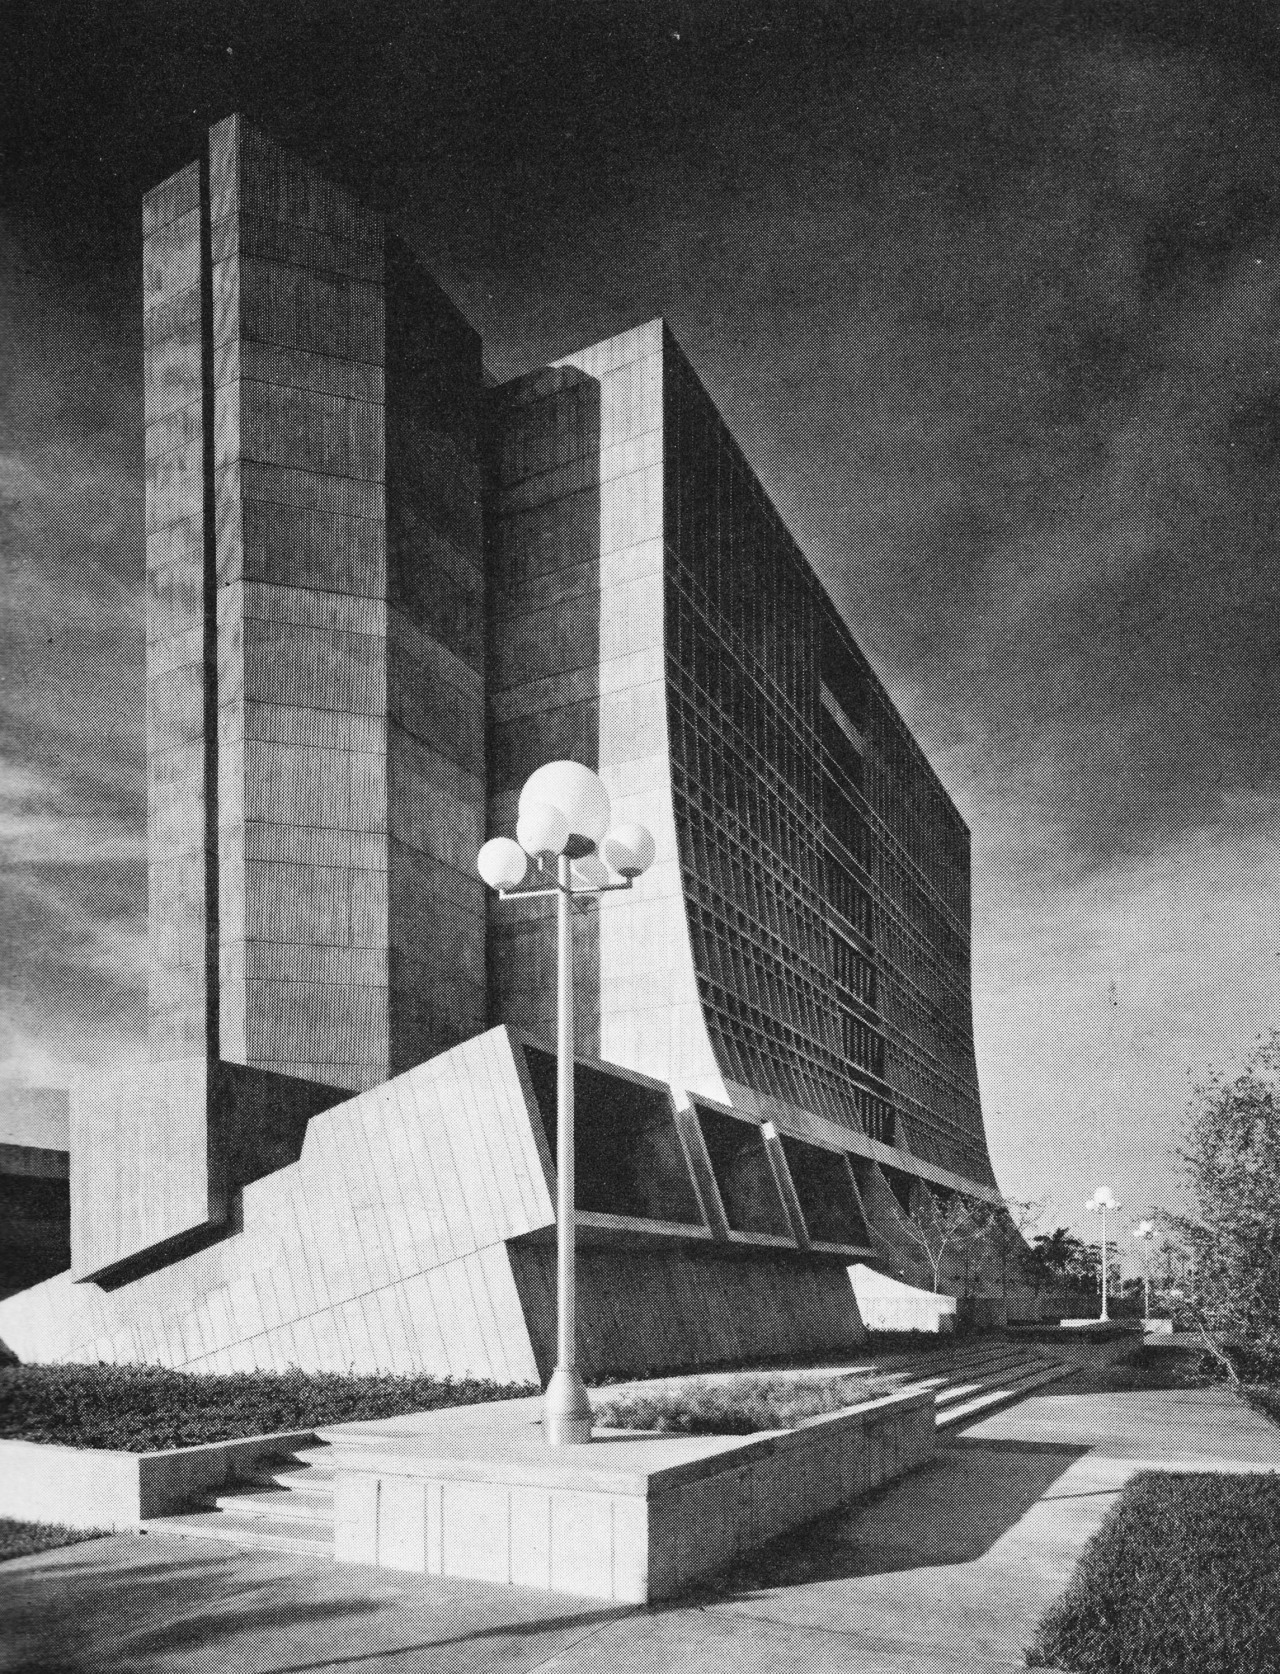 Mailman Center for Child Development, University of Miami, Florida, 1972 (Ferendino Grafton Spillis Candela)